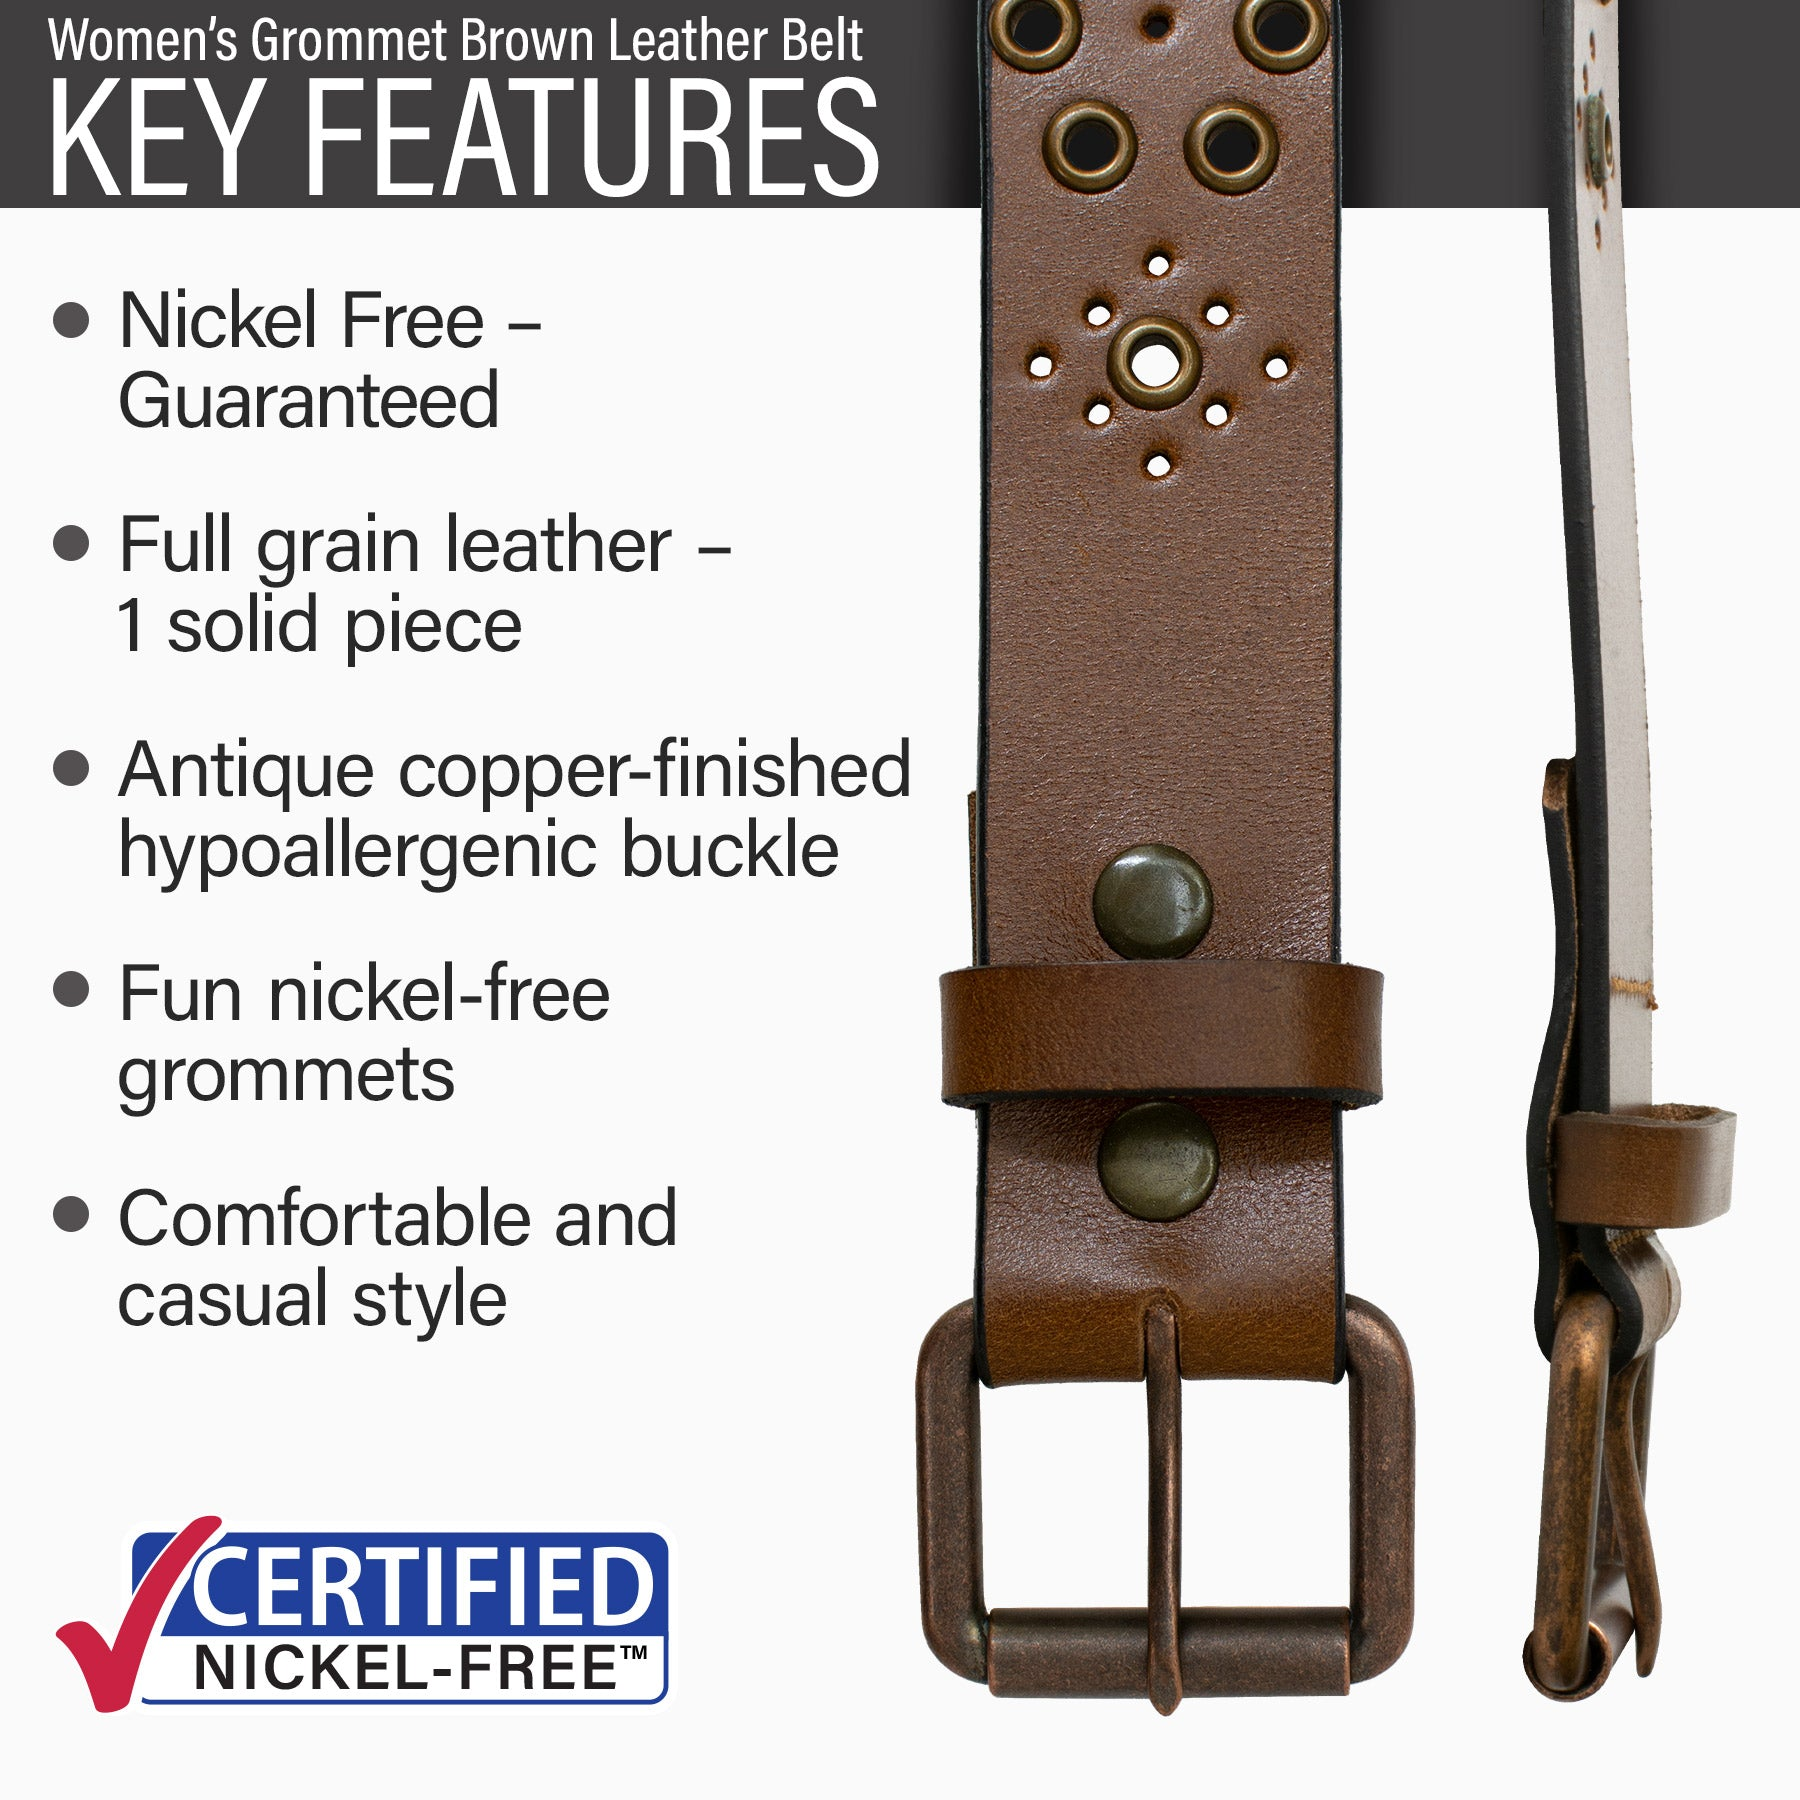 Key features of Women's Nickel Free Grommet Brown Leather Belt | Hypoallergenic buckle, stitched on nickel-free copper buckle, full grain leather, nickel-free grommets, casual style